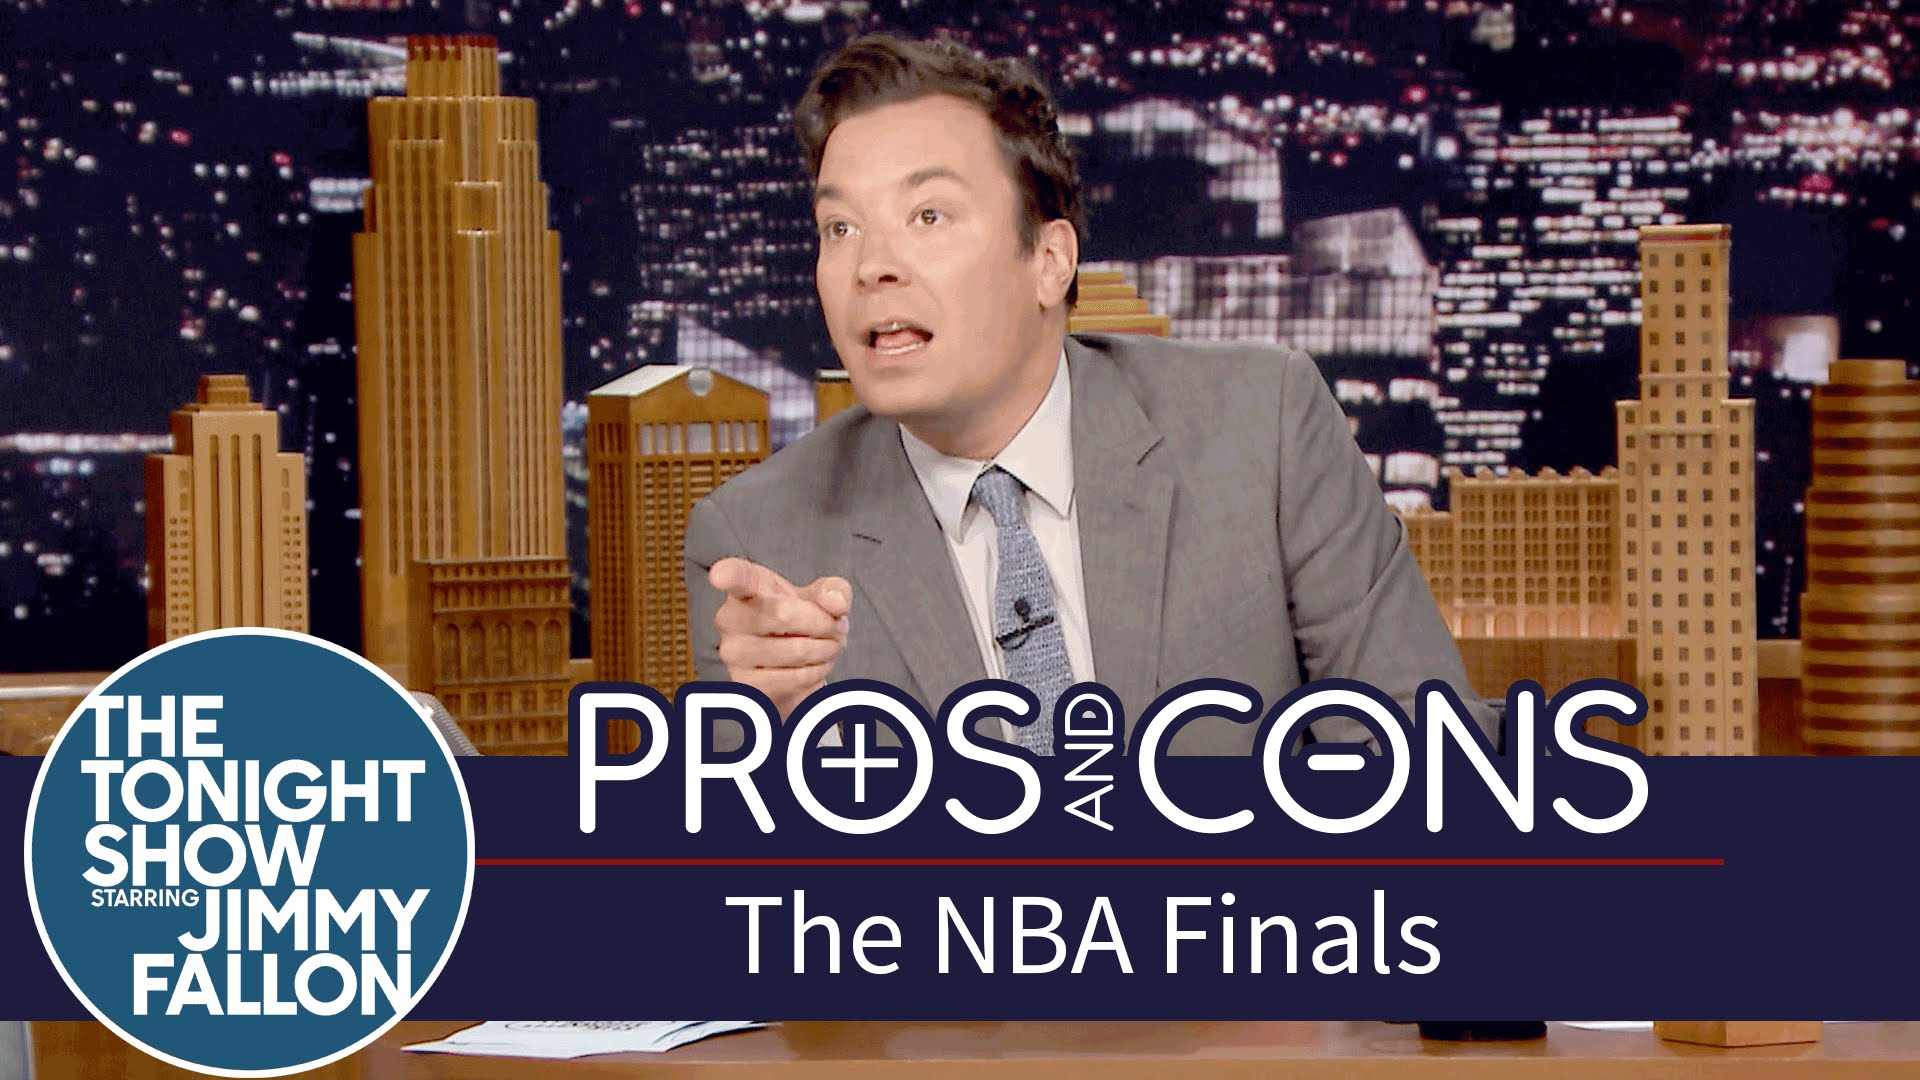 Jimmy Fallon breaks down the pros and cons of this year's NBA Finals